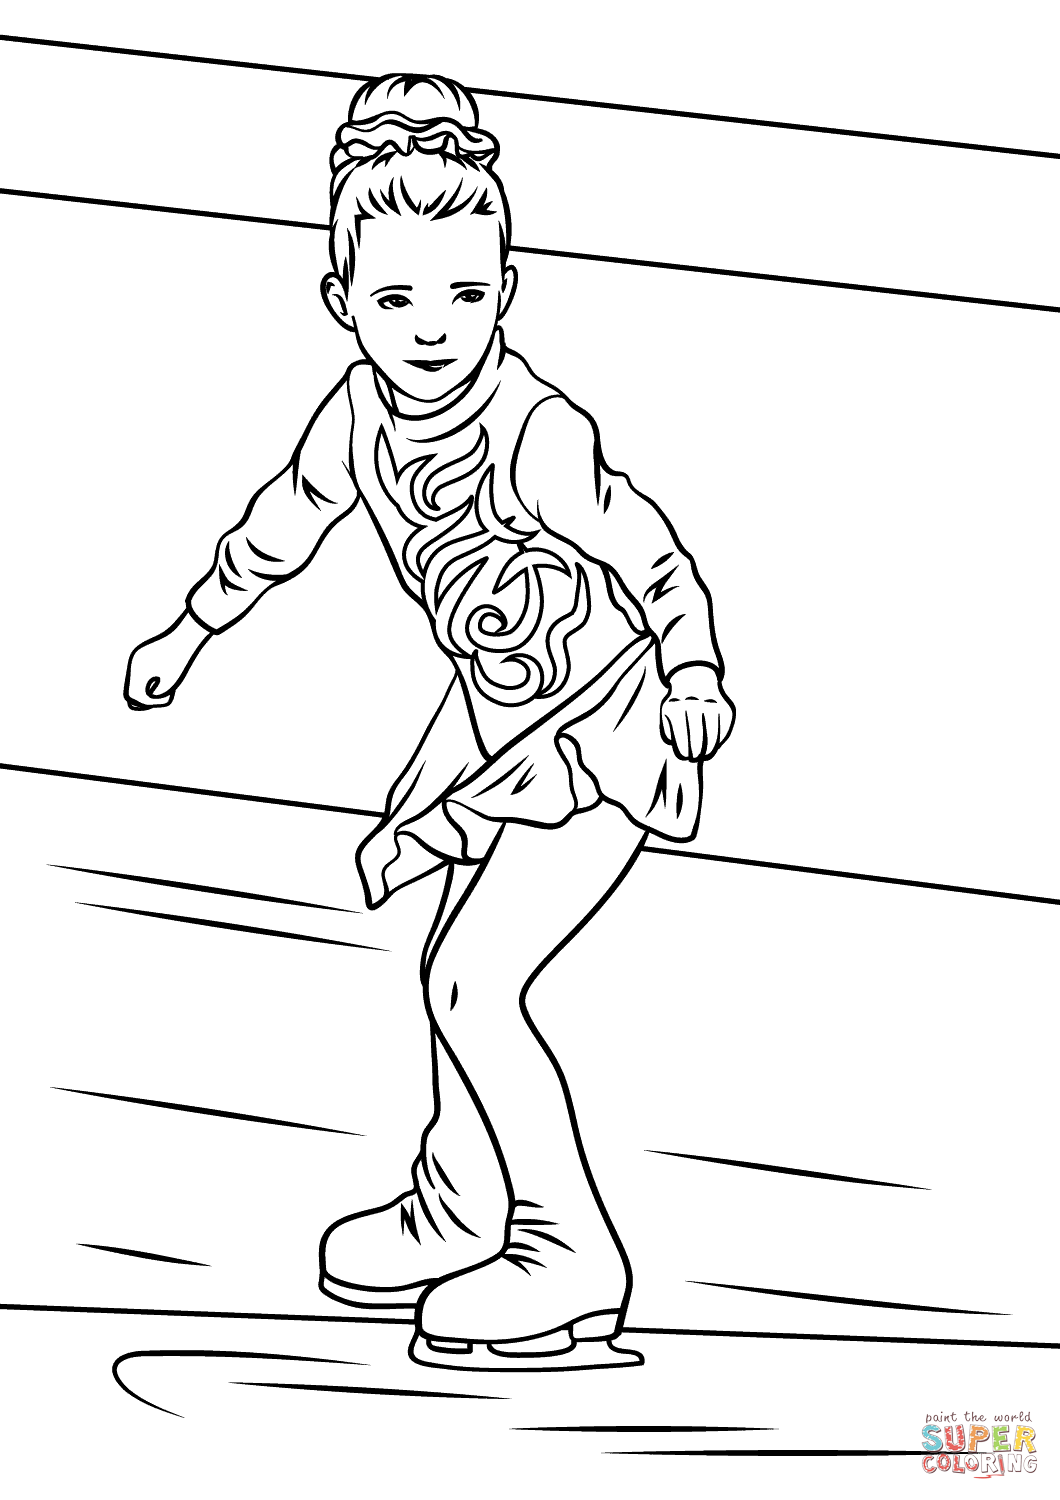 ice skating colouring pictures girl ice skater coloring page free printable coloring pages colouring ice pictures skating